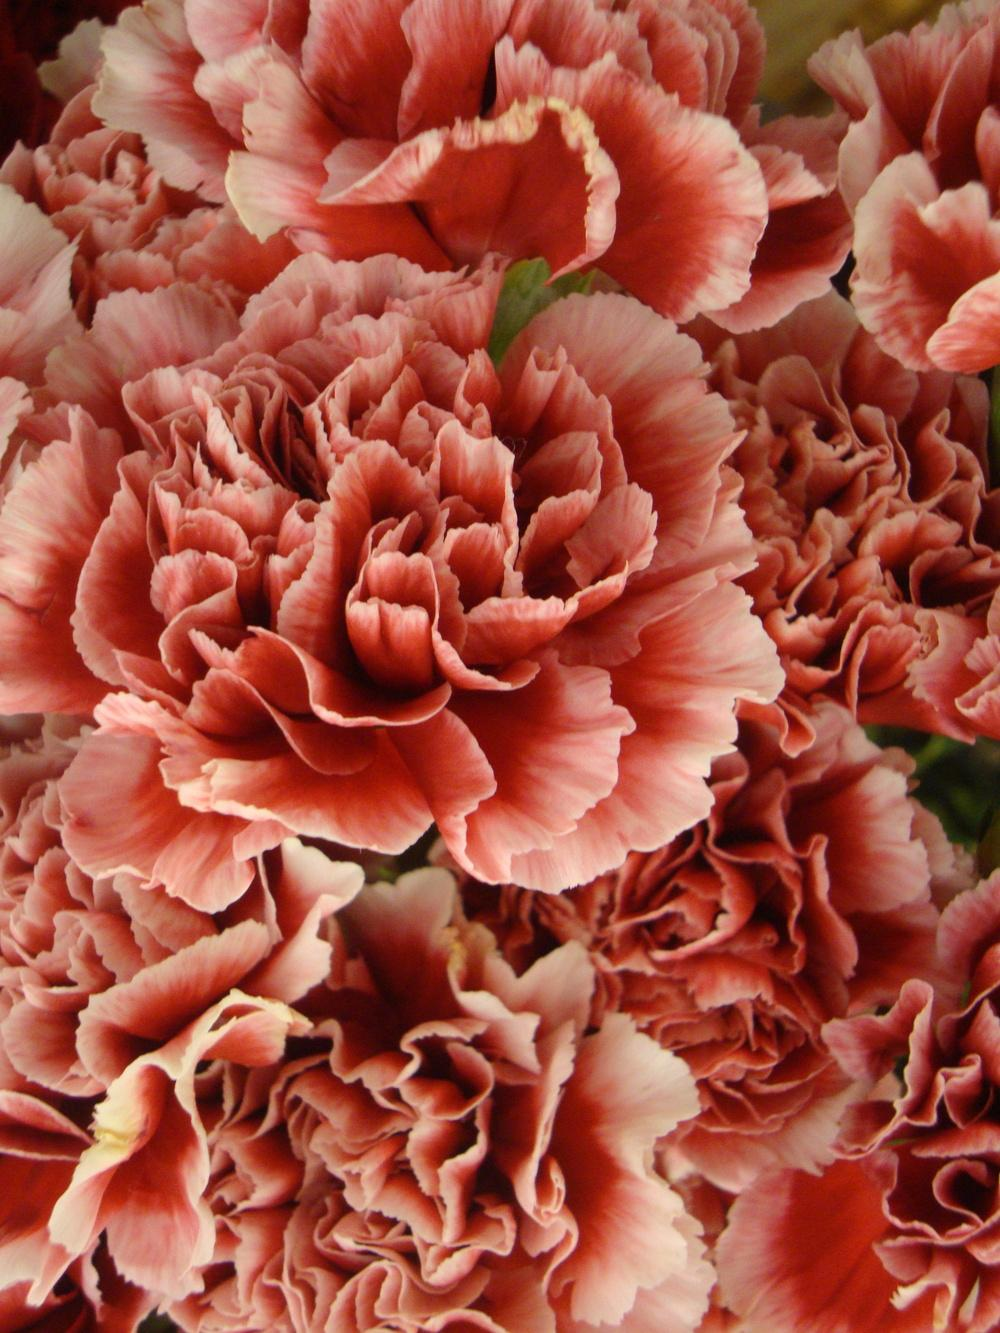 Photo of Dianthus uploaded by Paul2032